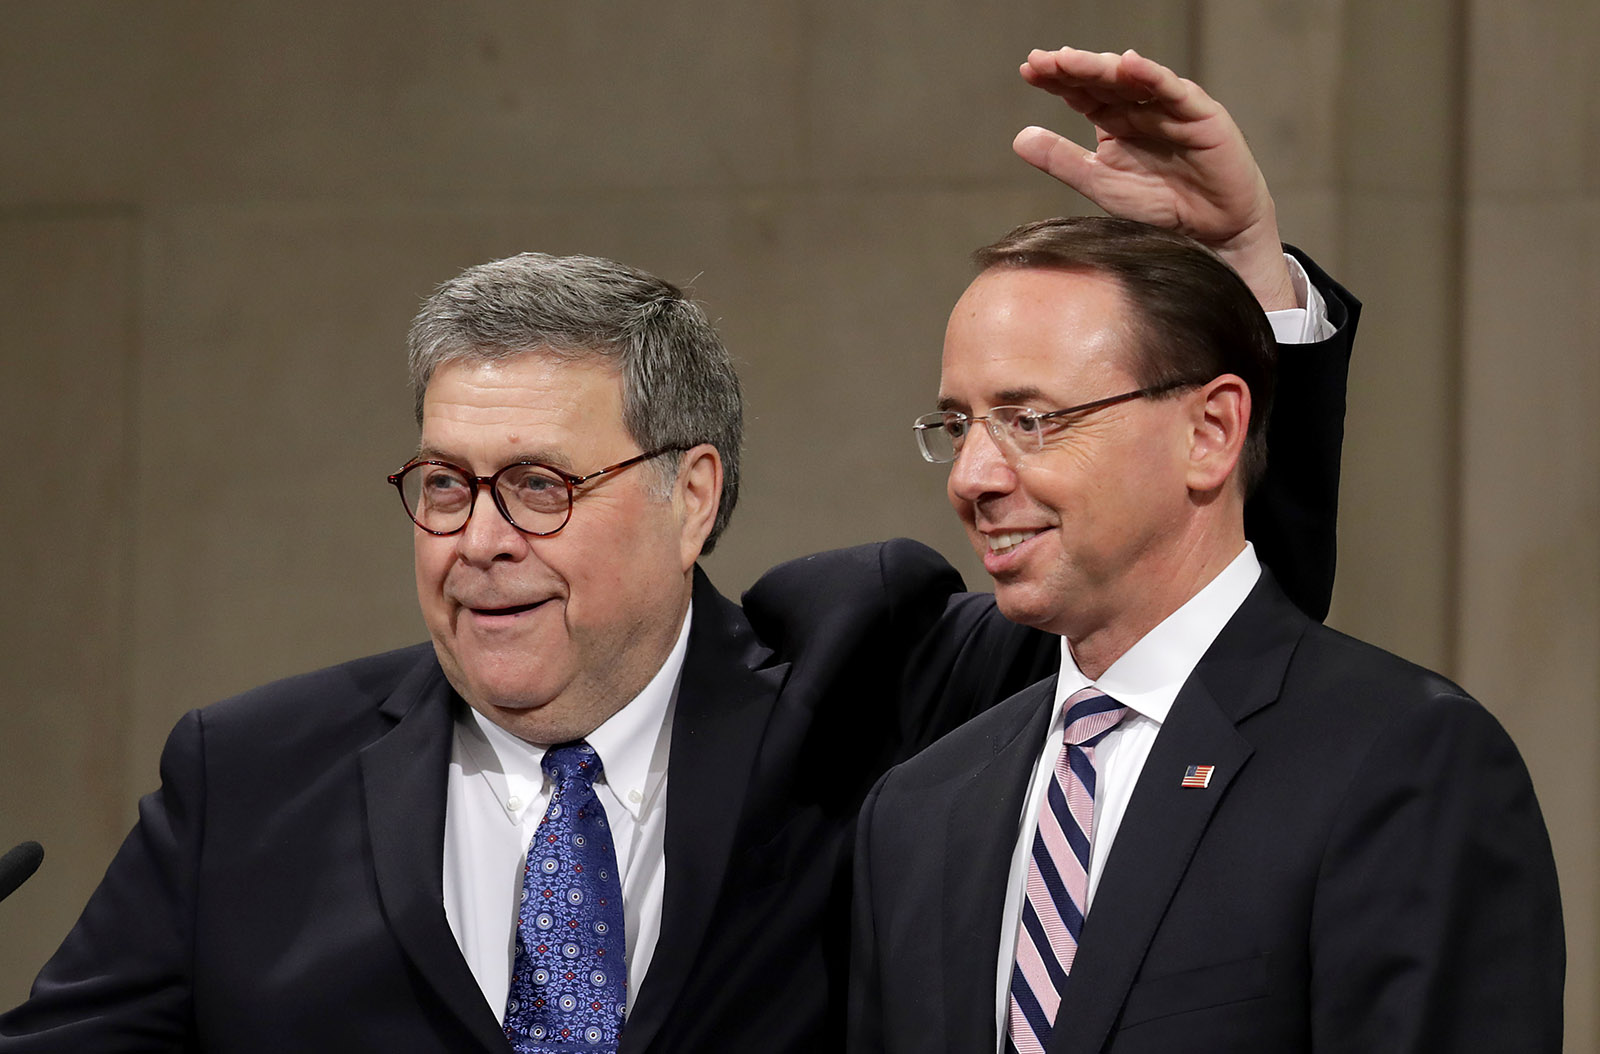 What Rod Rosenstein Knew When He Helped Trump Fire Comey